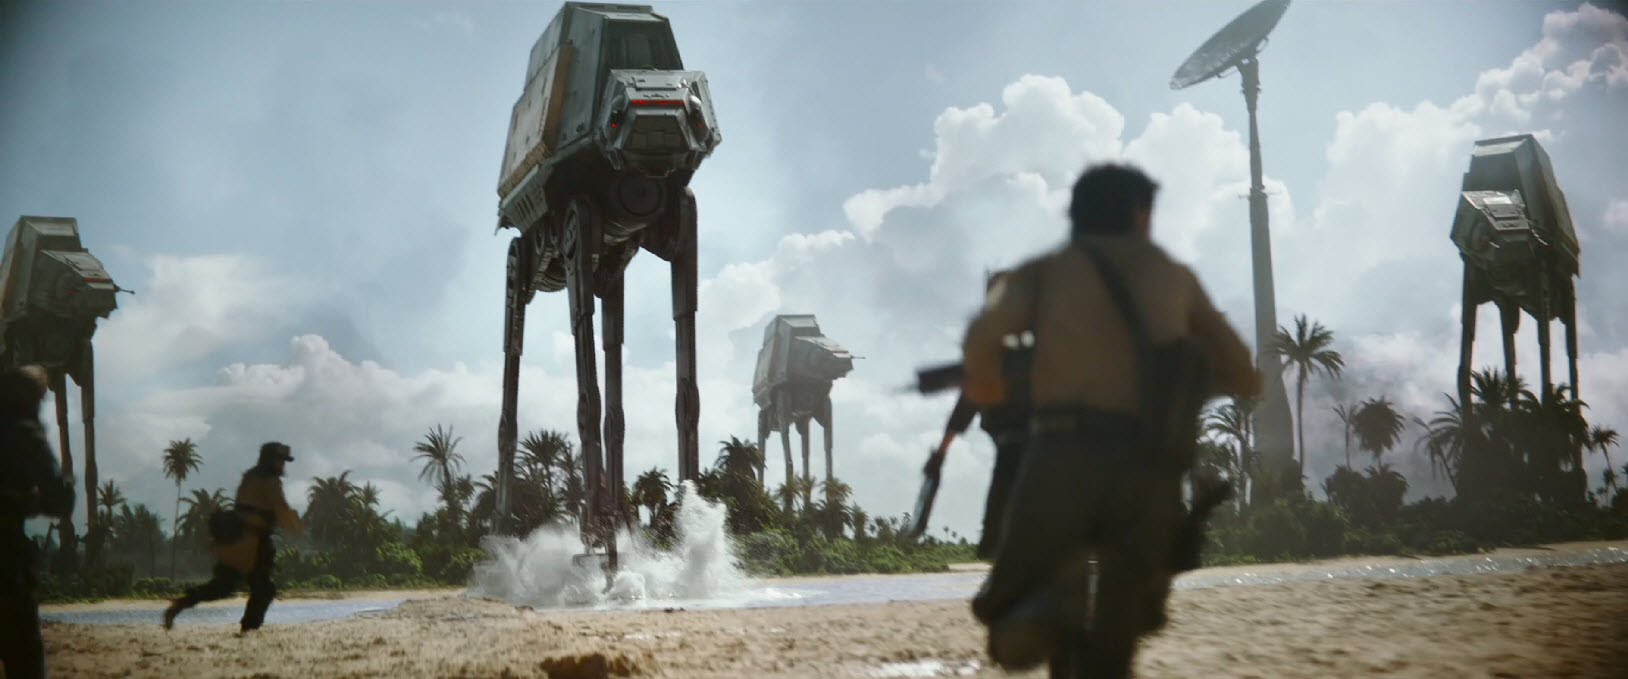 Rogue One: A Star Wars Story with a difference